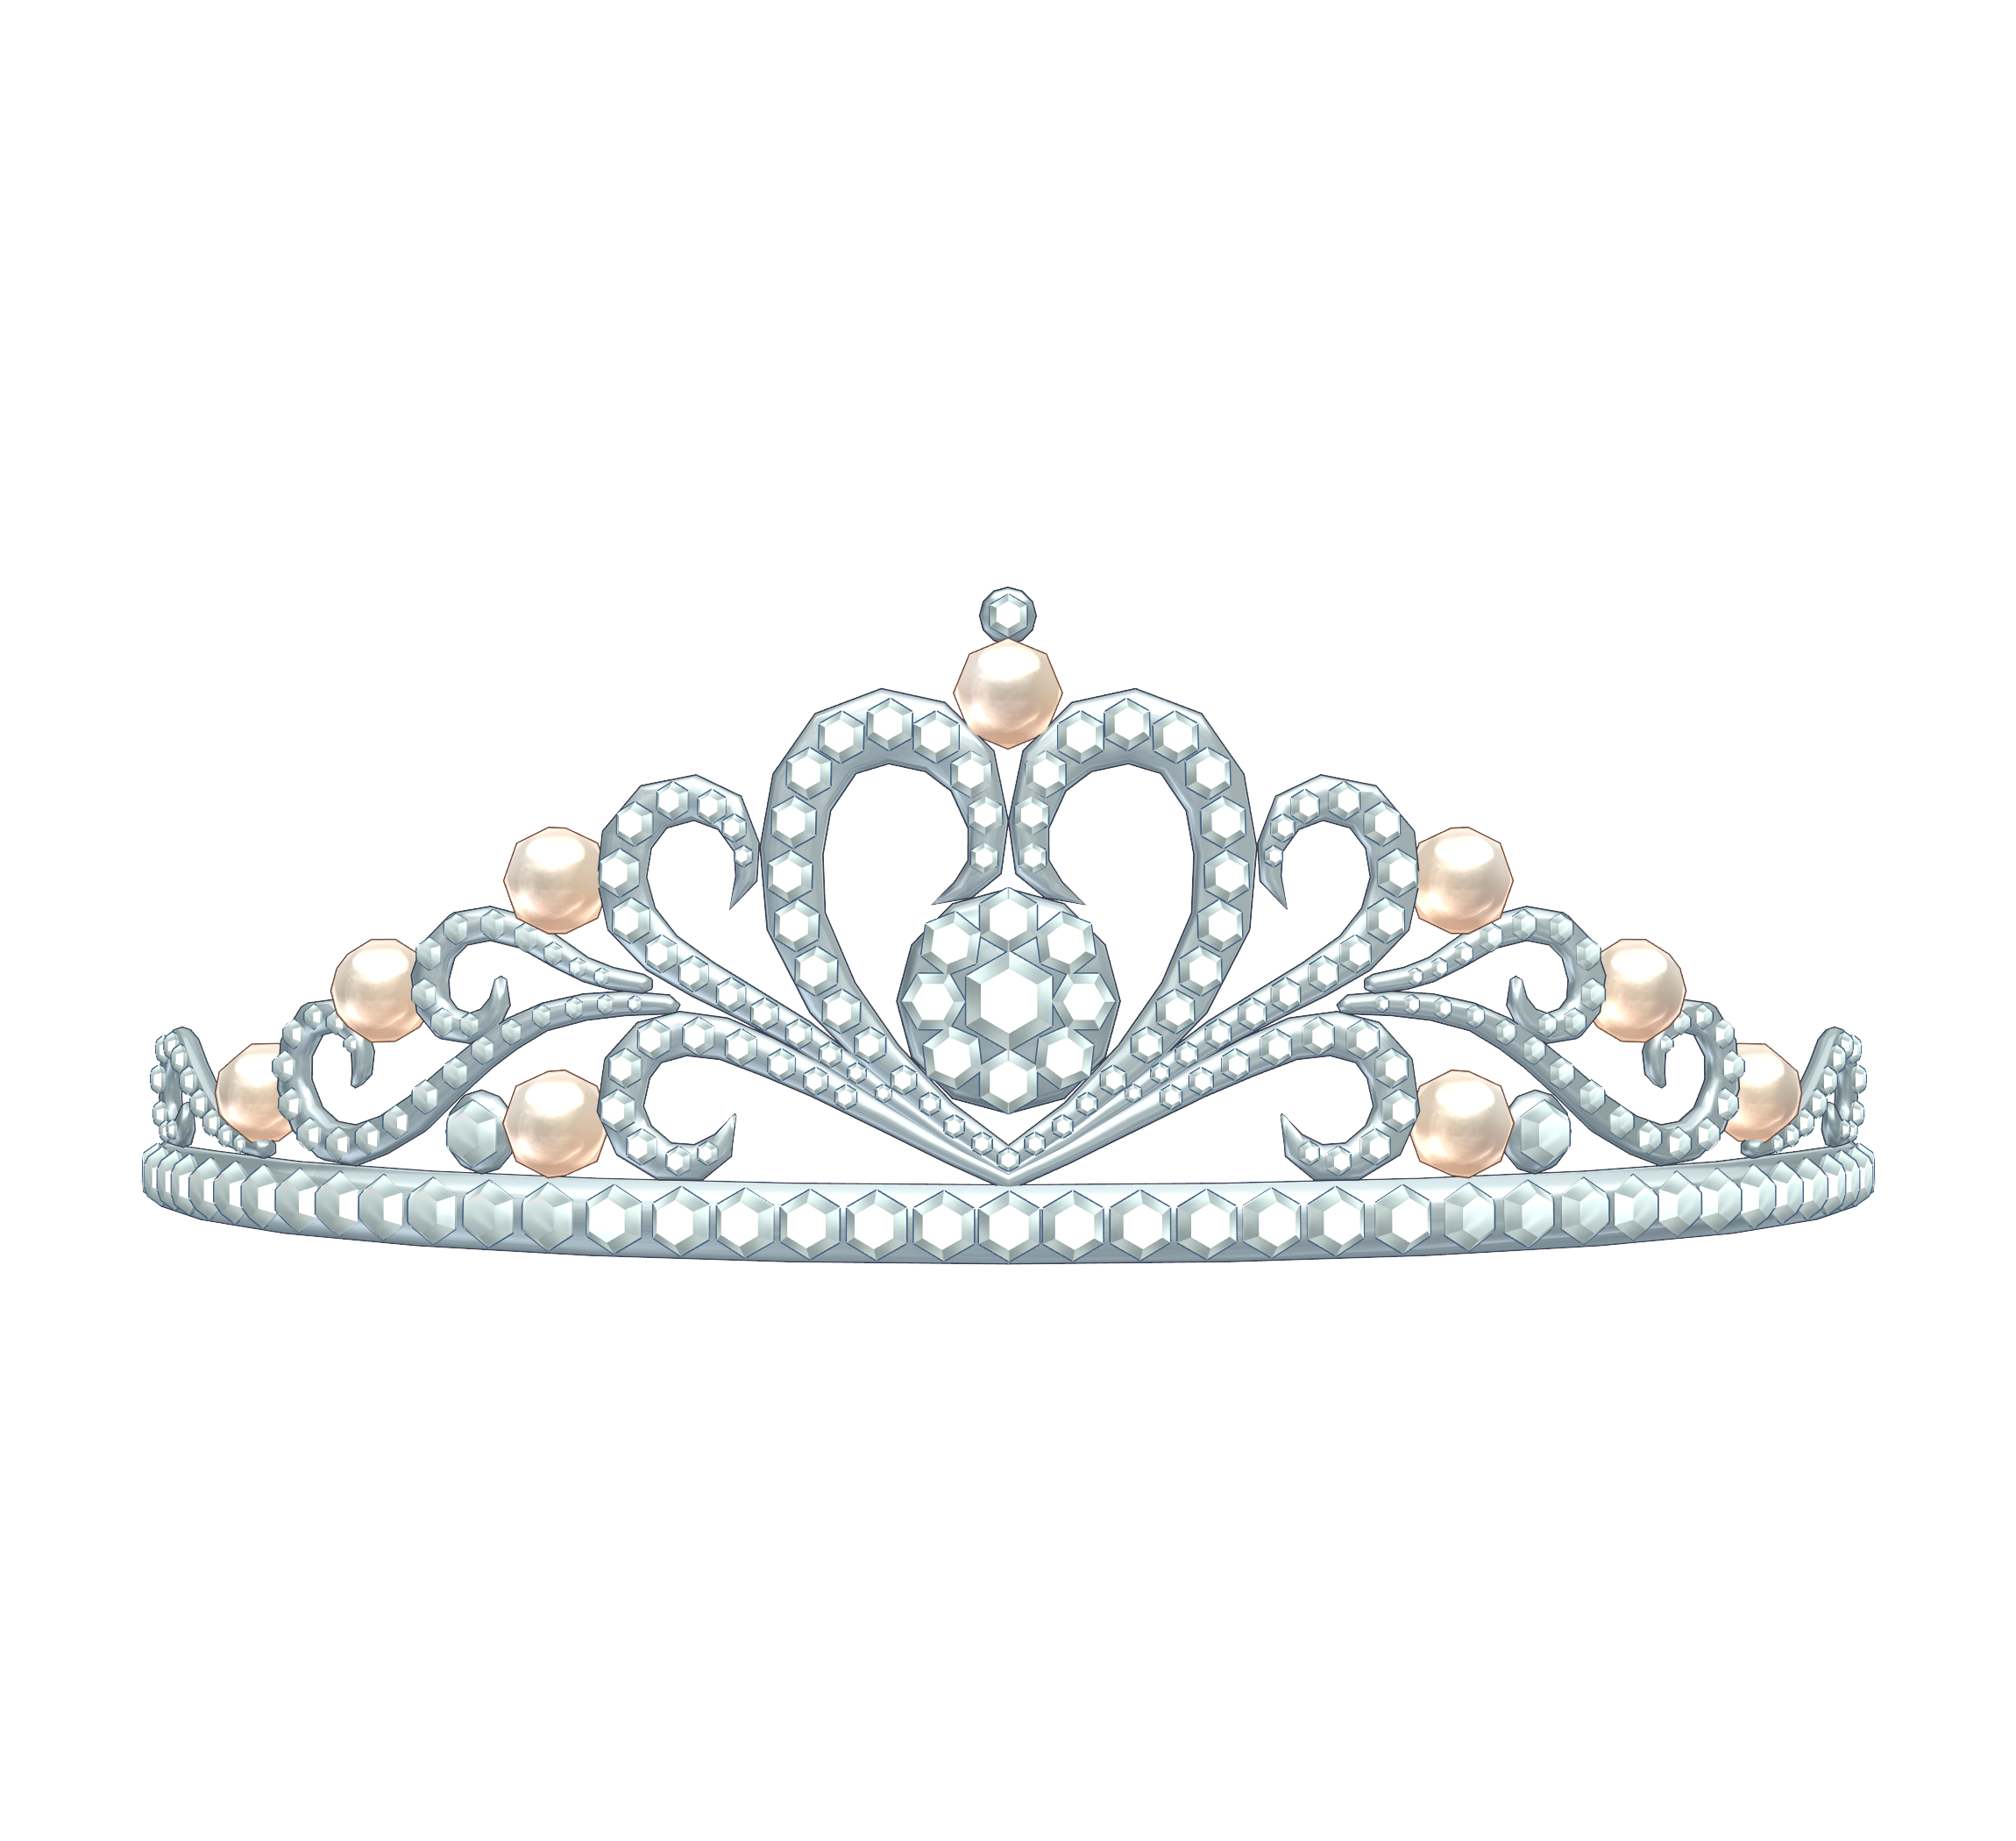 Silver crown clipart no background graphic freeuse stock Tiara PNG HD Transparent Tiara HD.PNG Images. | PlusPNG graphic freeuse stock